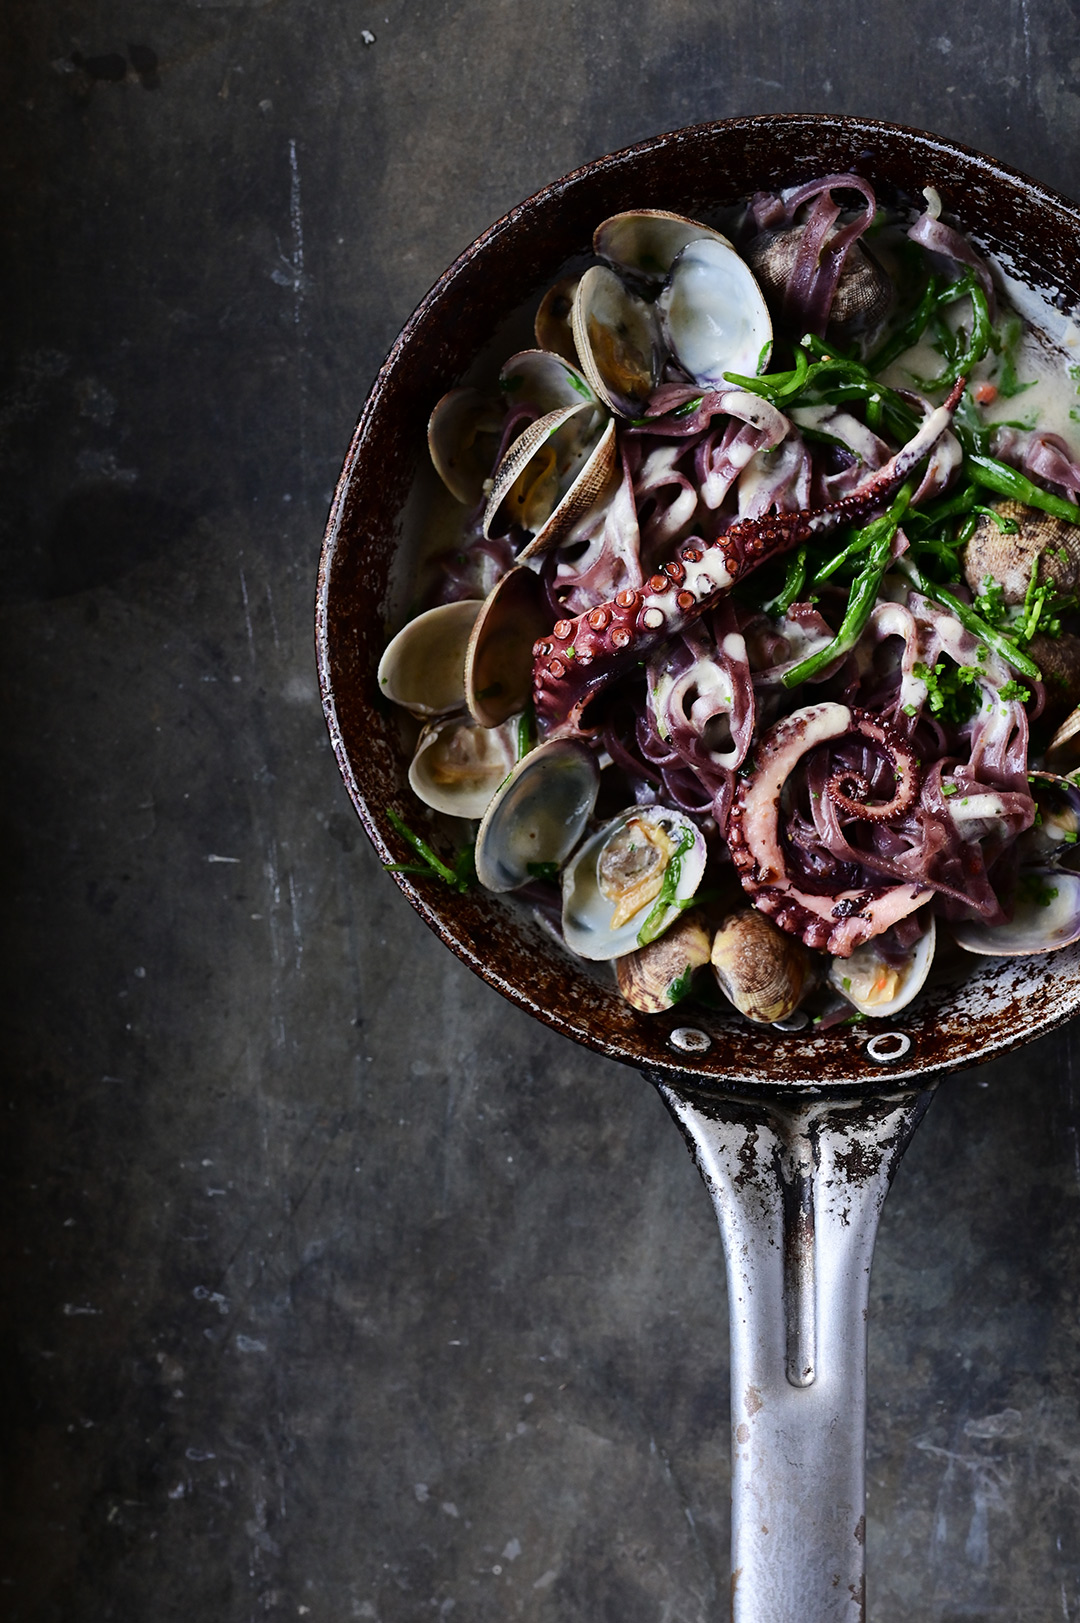 Creamy garlic black pasta with clams and